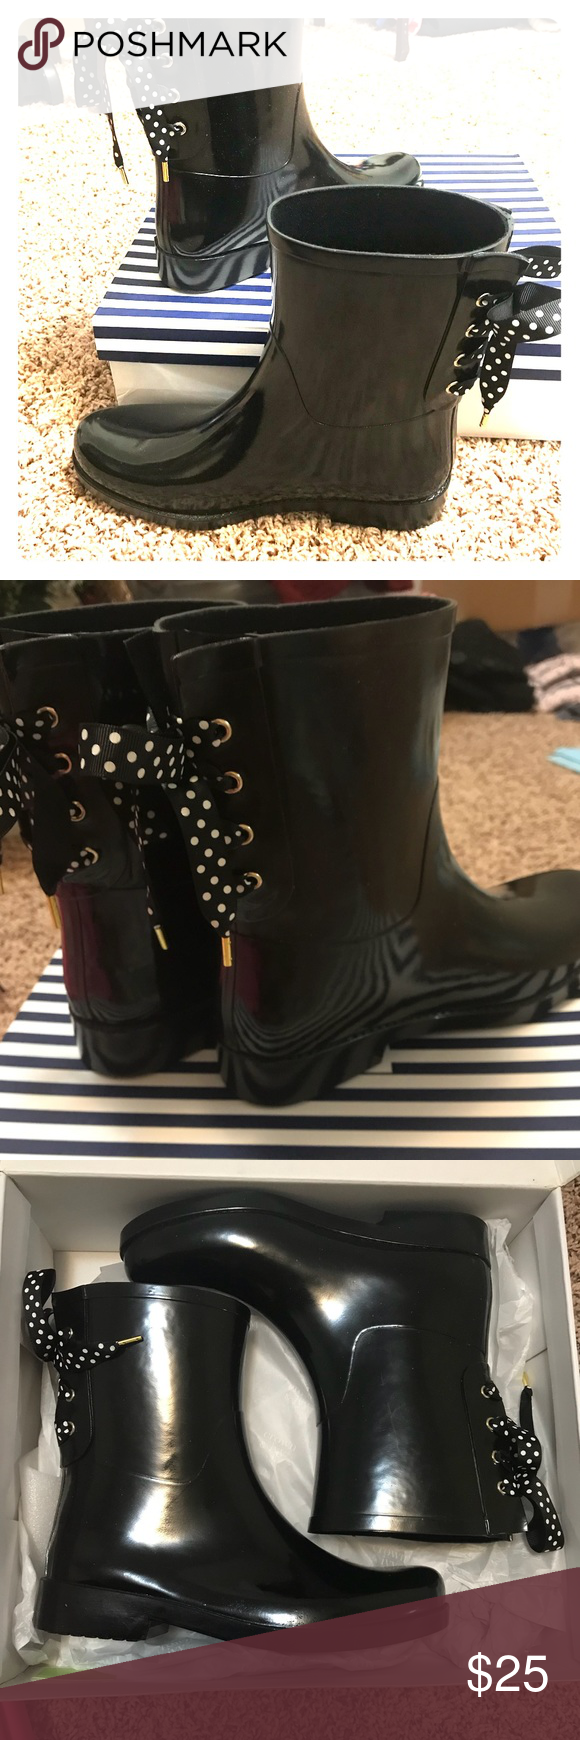 3f353ffa6ea1 Crown   Ivy Rayme Lace Rain Boot  NEW  Crown and Ivy rubber gloss rain boots  with lace up ribbon and bows on back. Ribbon black with white polka dots.